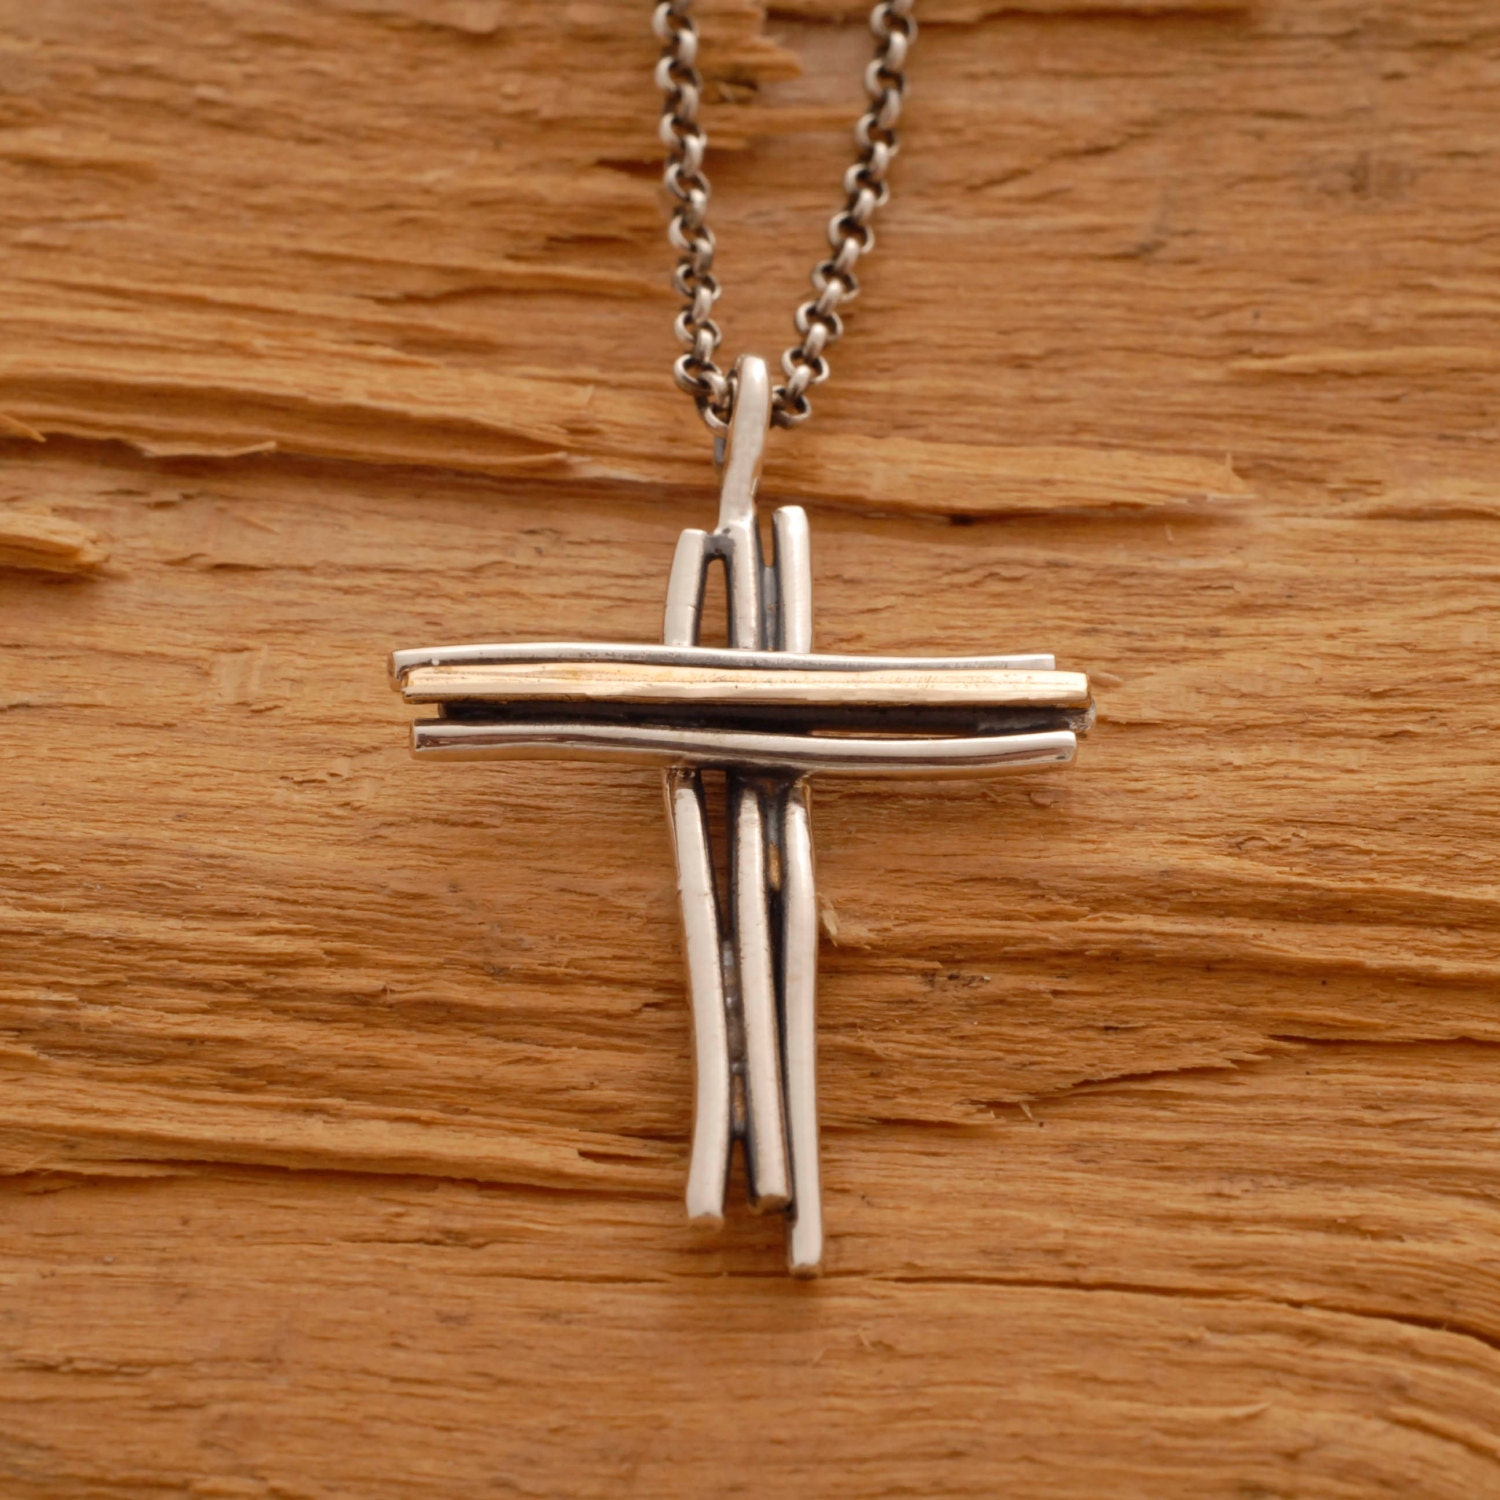 Silver and Gold Cross Νecklace for Men or Women Unique